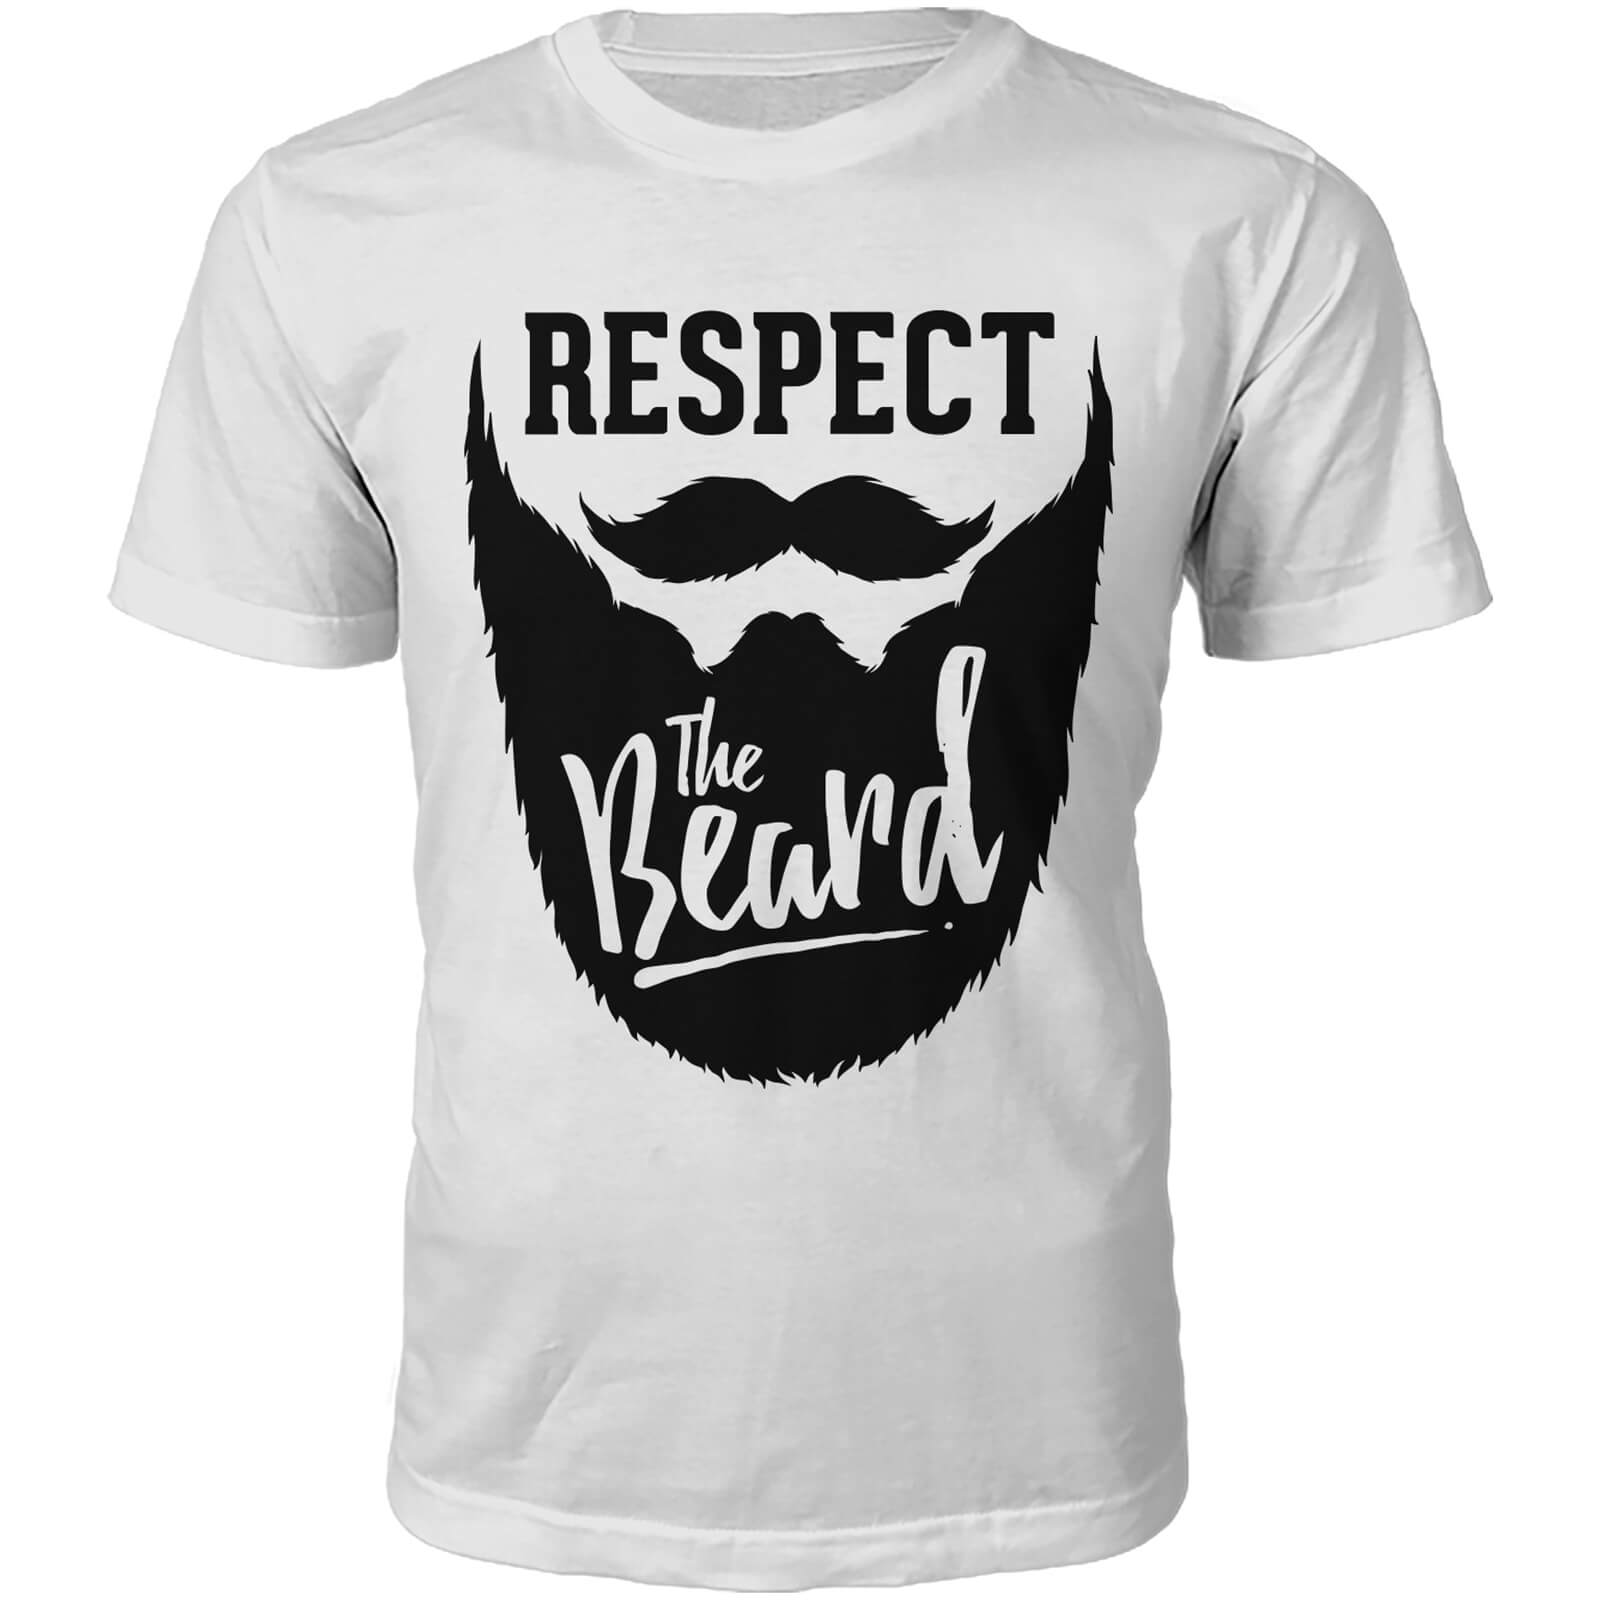 Respect The Beard Slogan T-Shirt - White